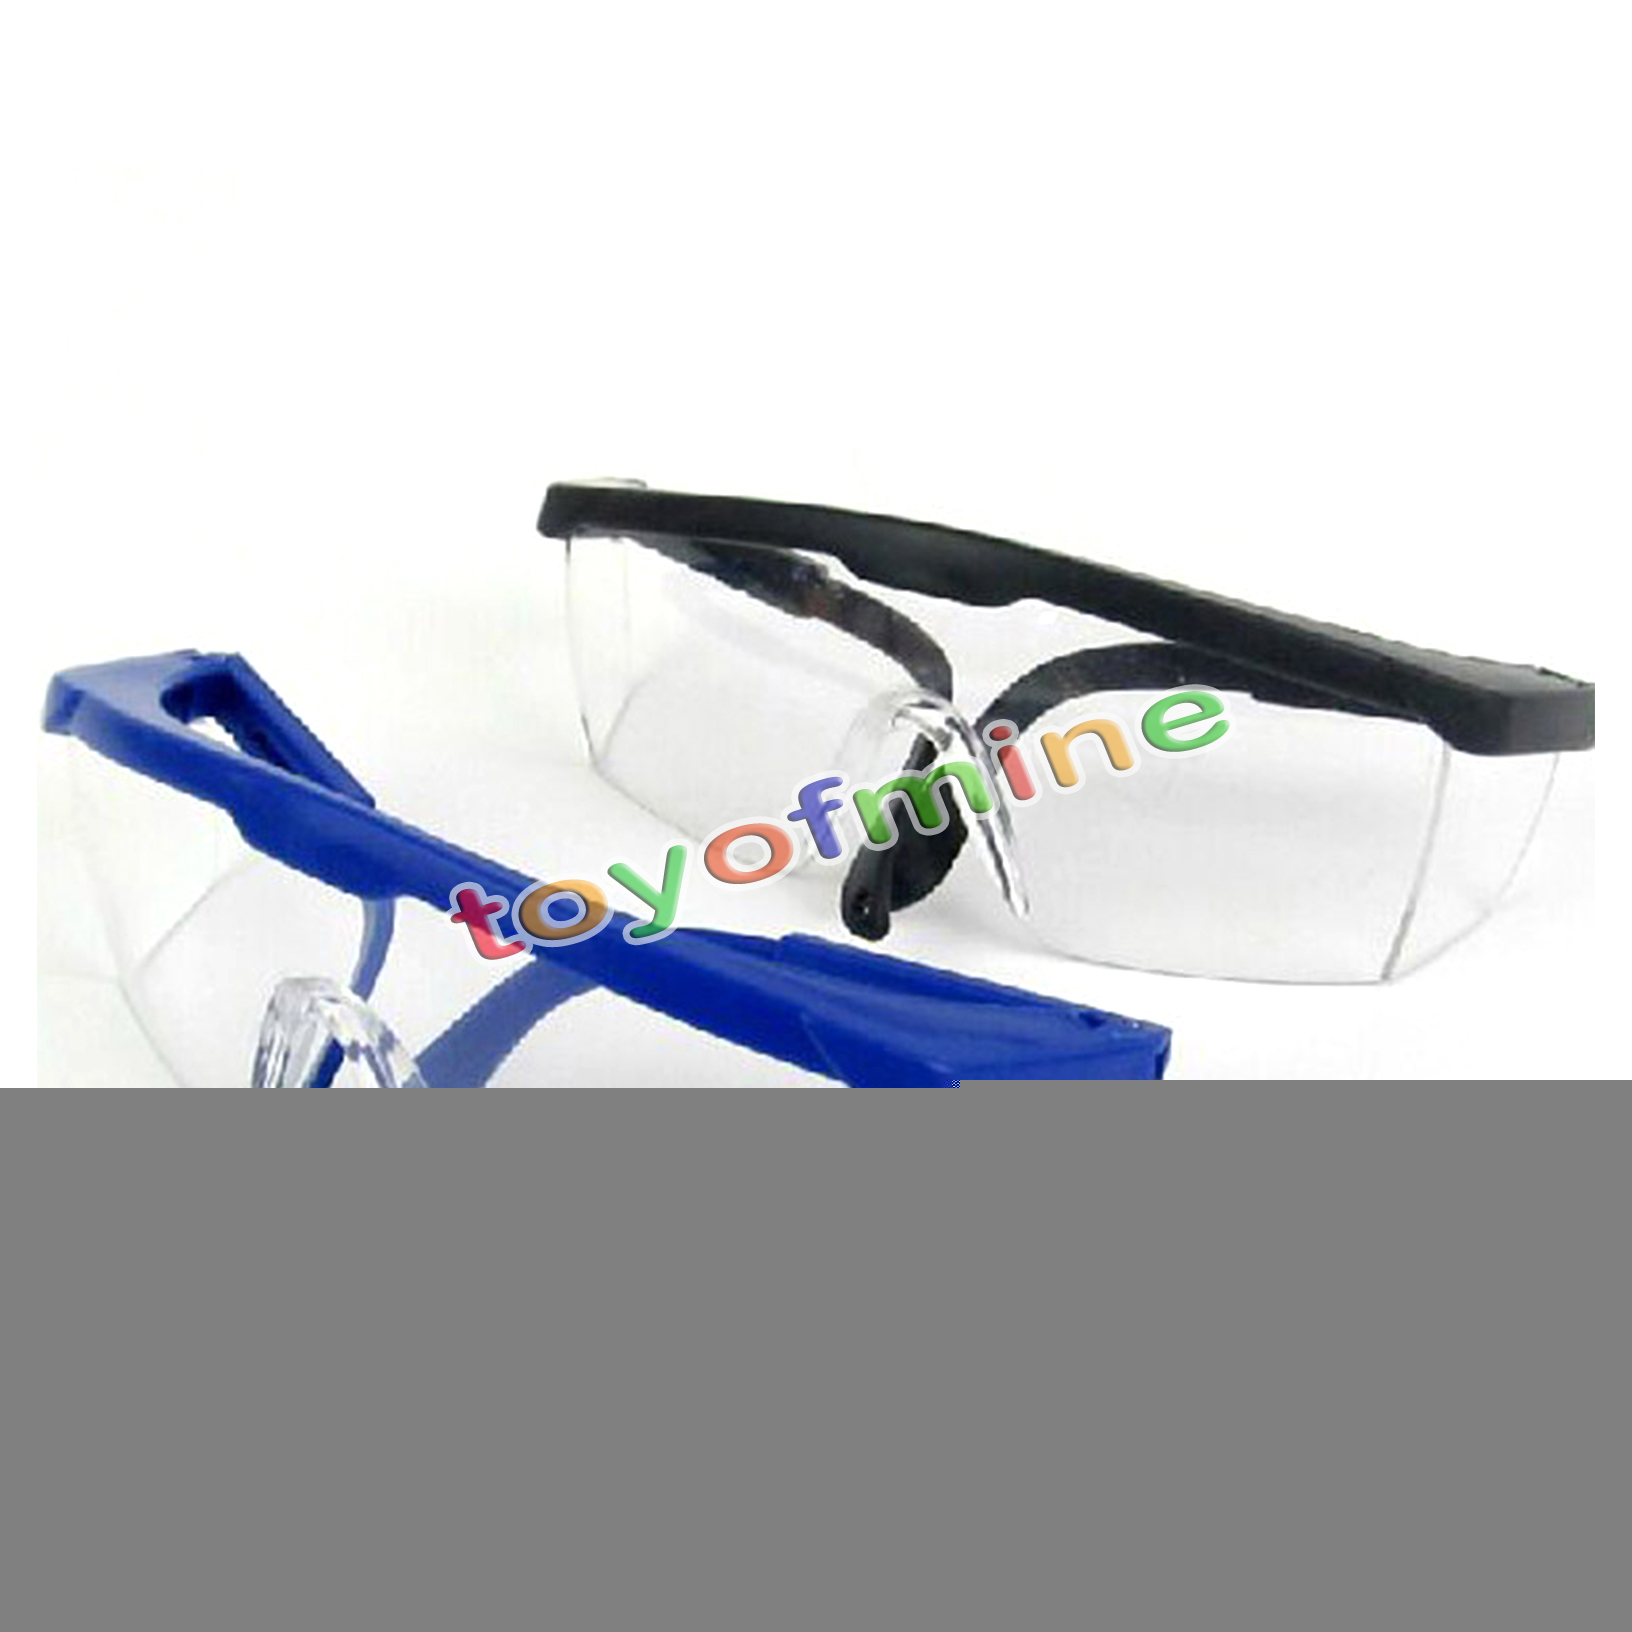 safety need goggles glasses eye protection for